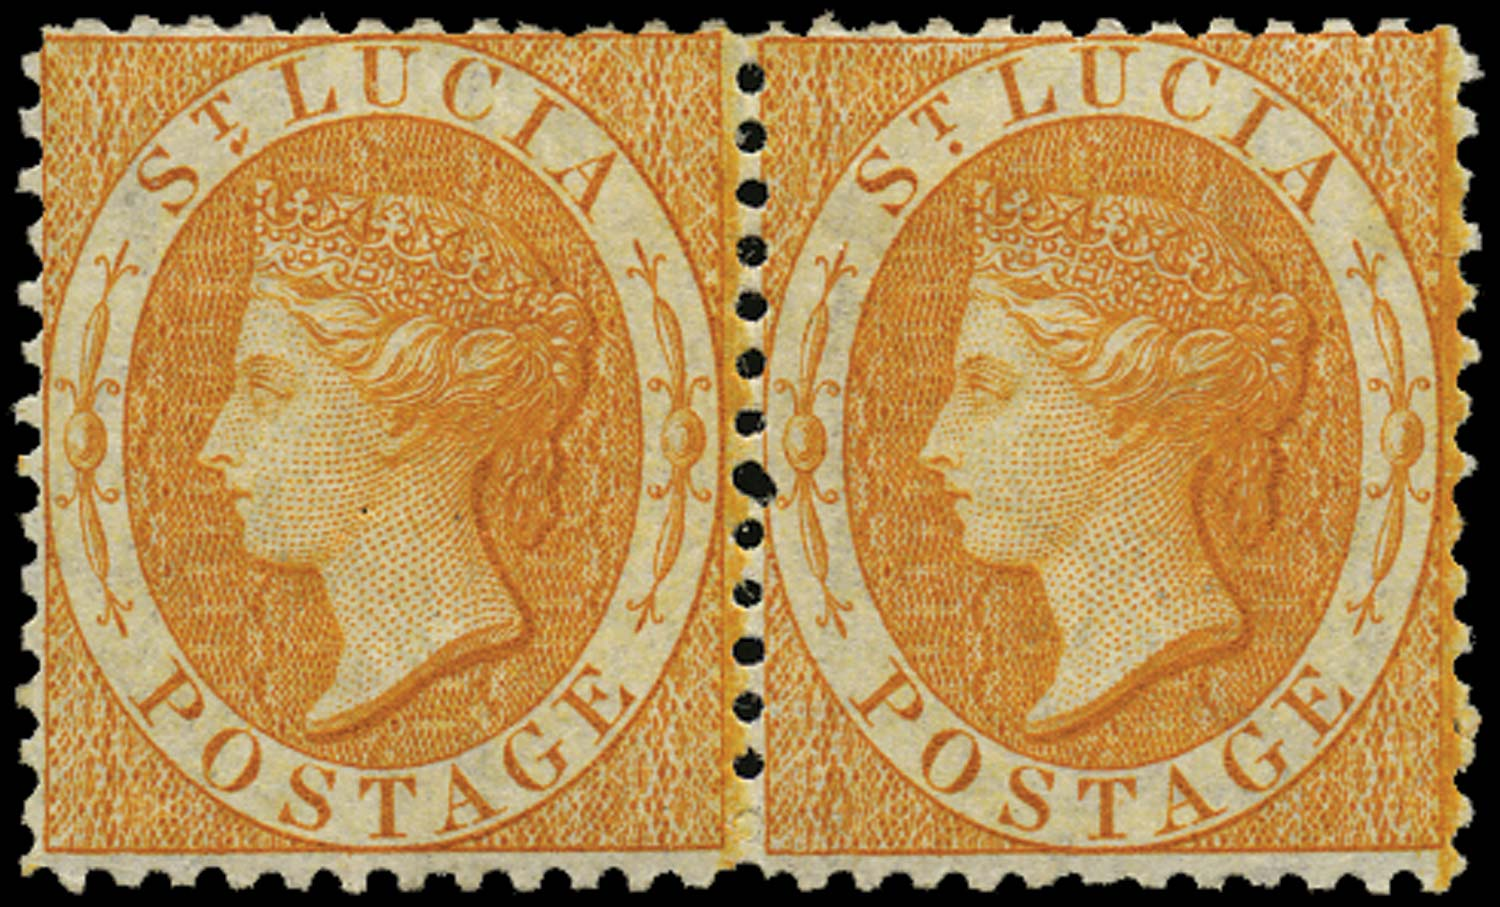 ST LUCIA 1864  SG14c Mint (1s) pale orange watermark CC perf 12½